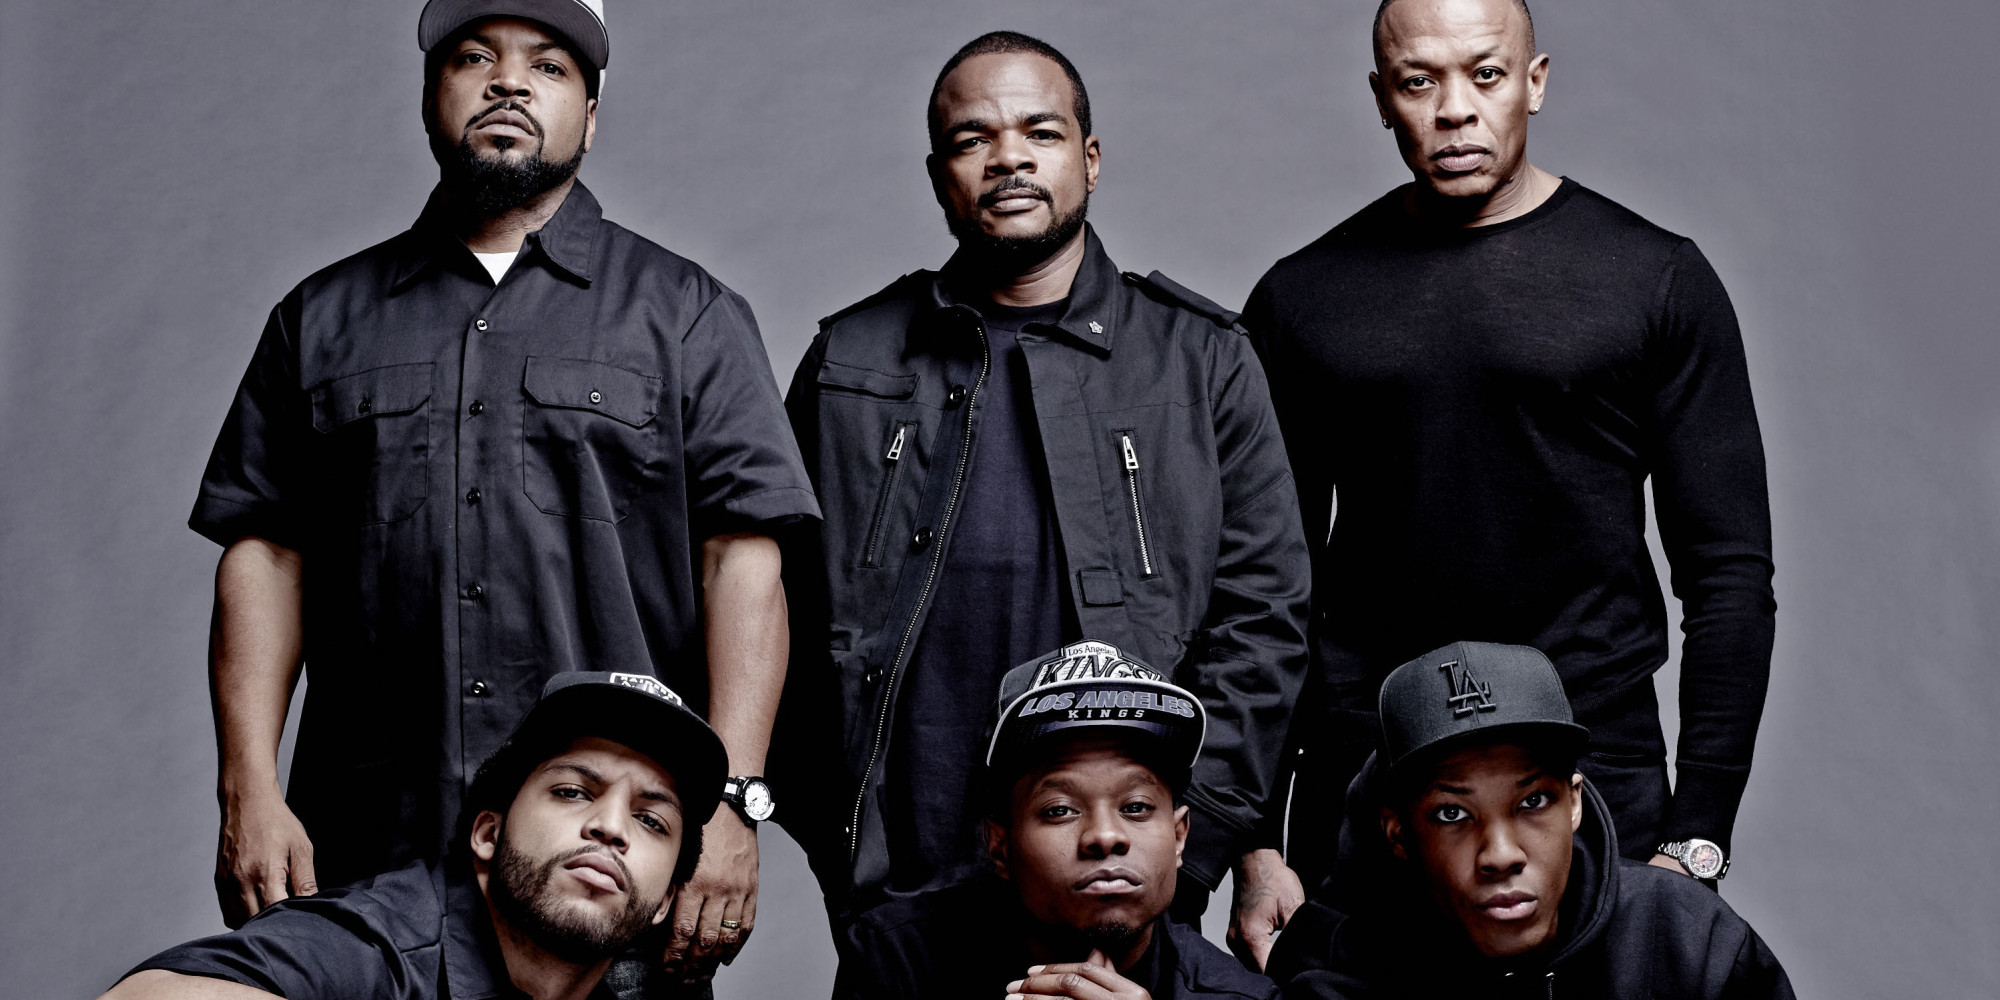 The Straight Outta Compton Casting Call Is So Offensive It Will Make Your Jaw Drop